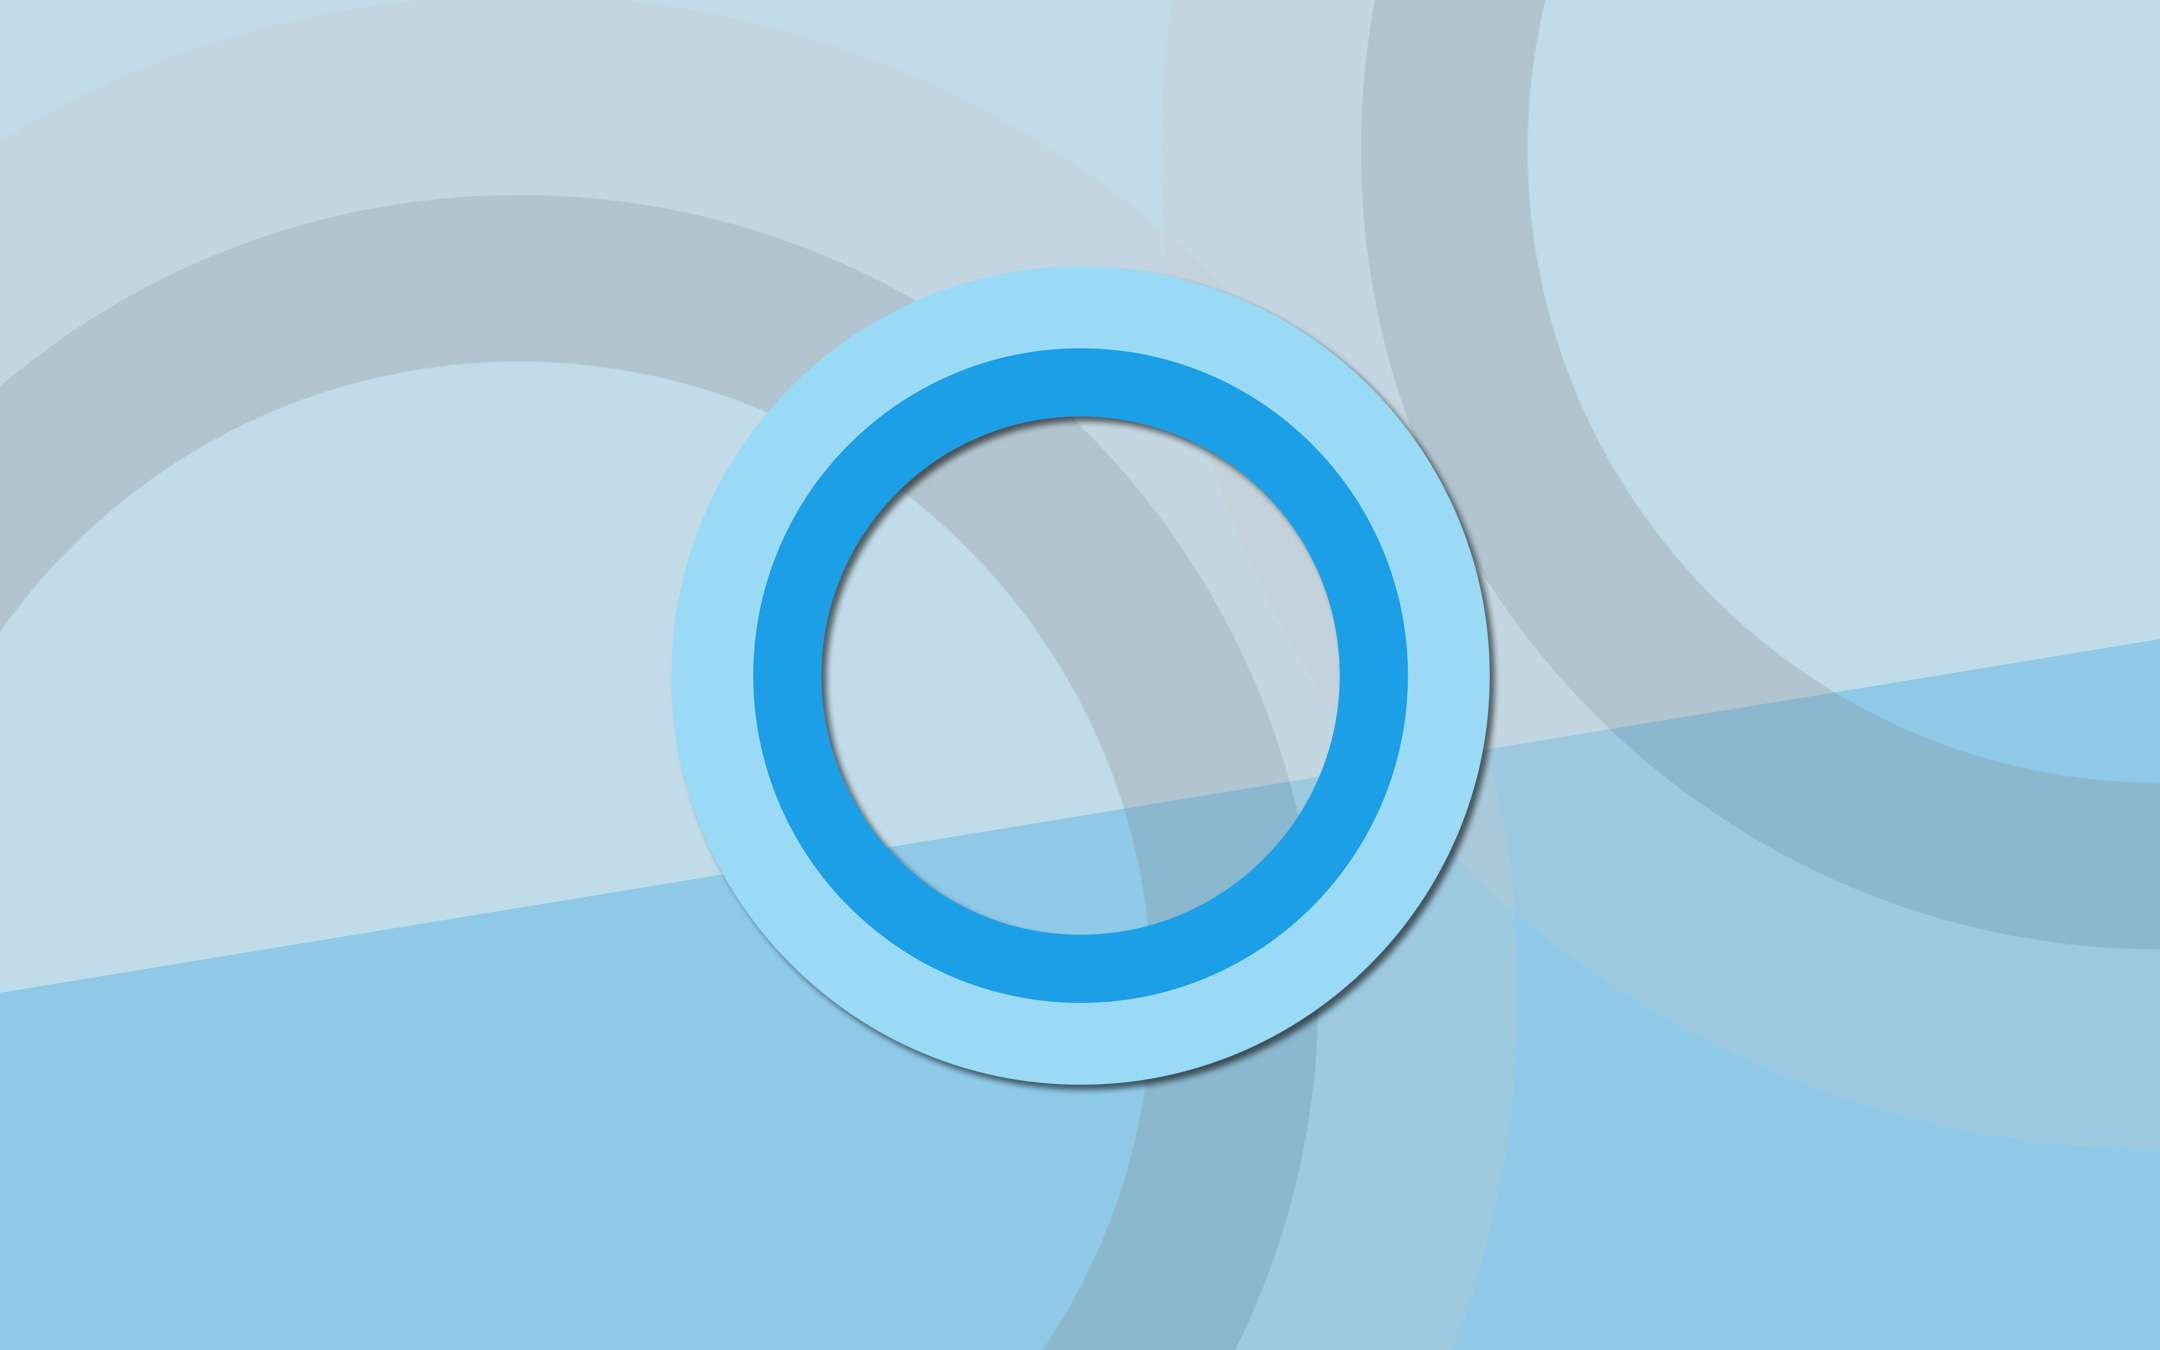 On Windows 10 the files will be found by Cortana